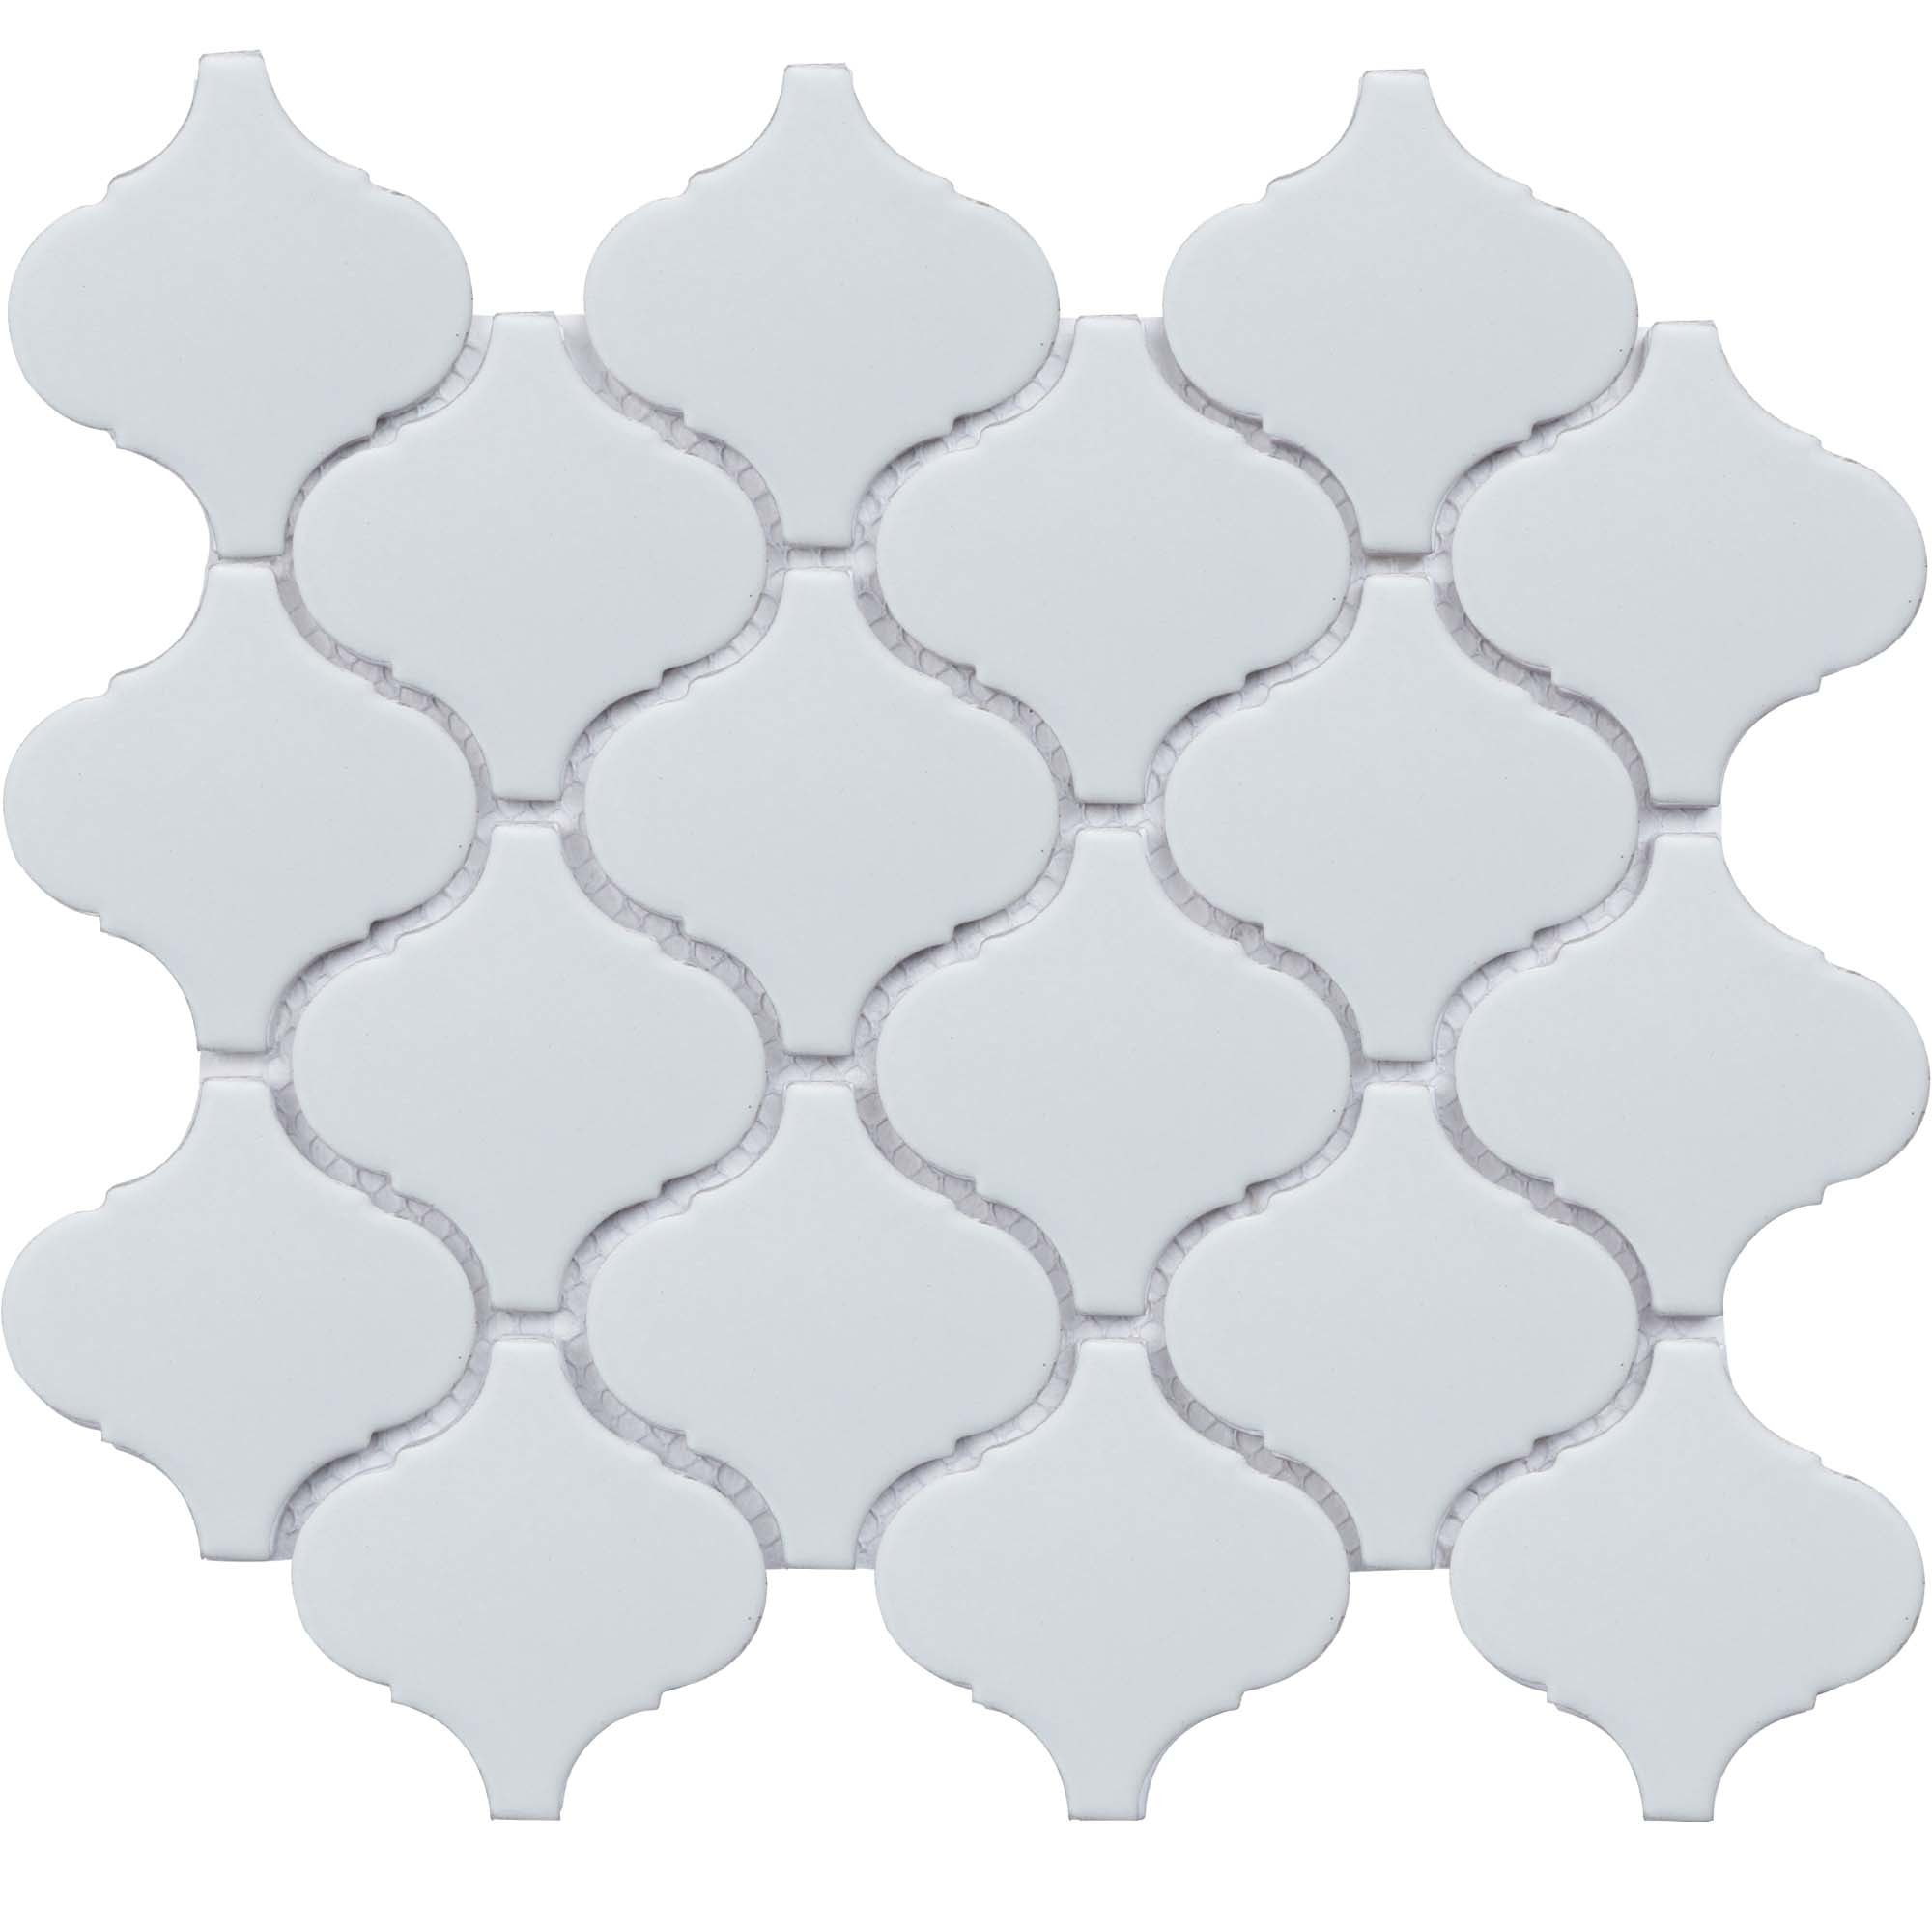 """11 x 9.65 x 0.26 inches / Matte Retro 3"""" Arabesque Porcelain Glossy Wall Tile in White 0"""